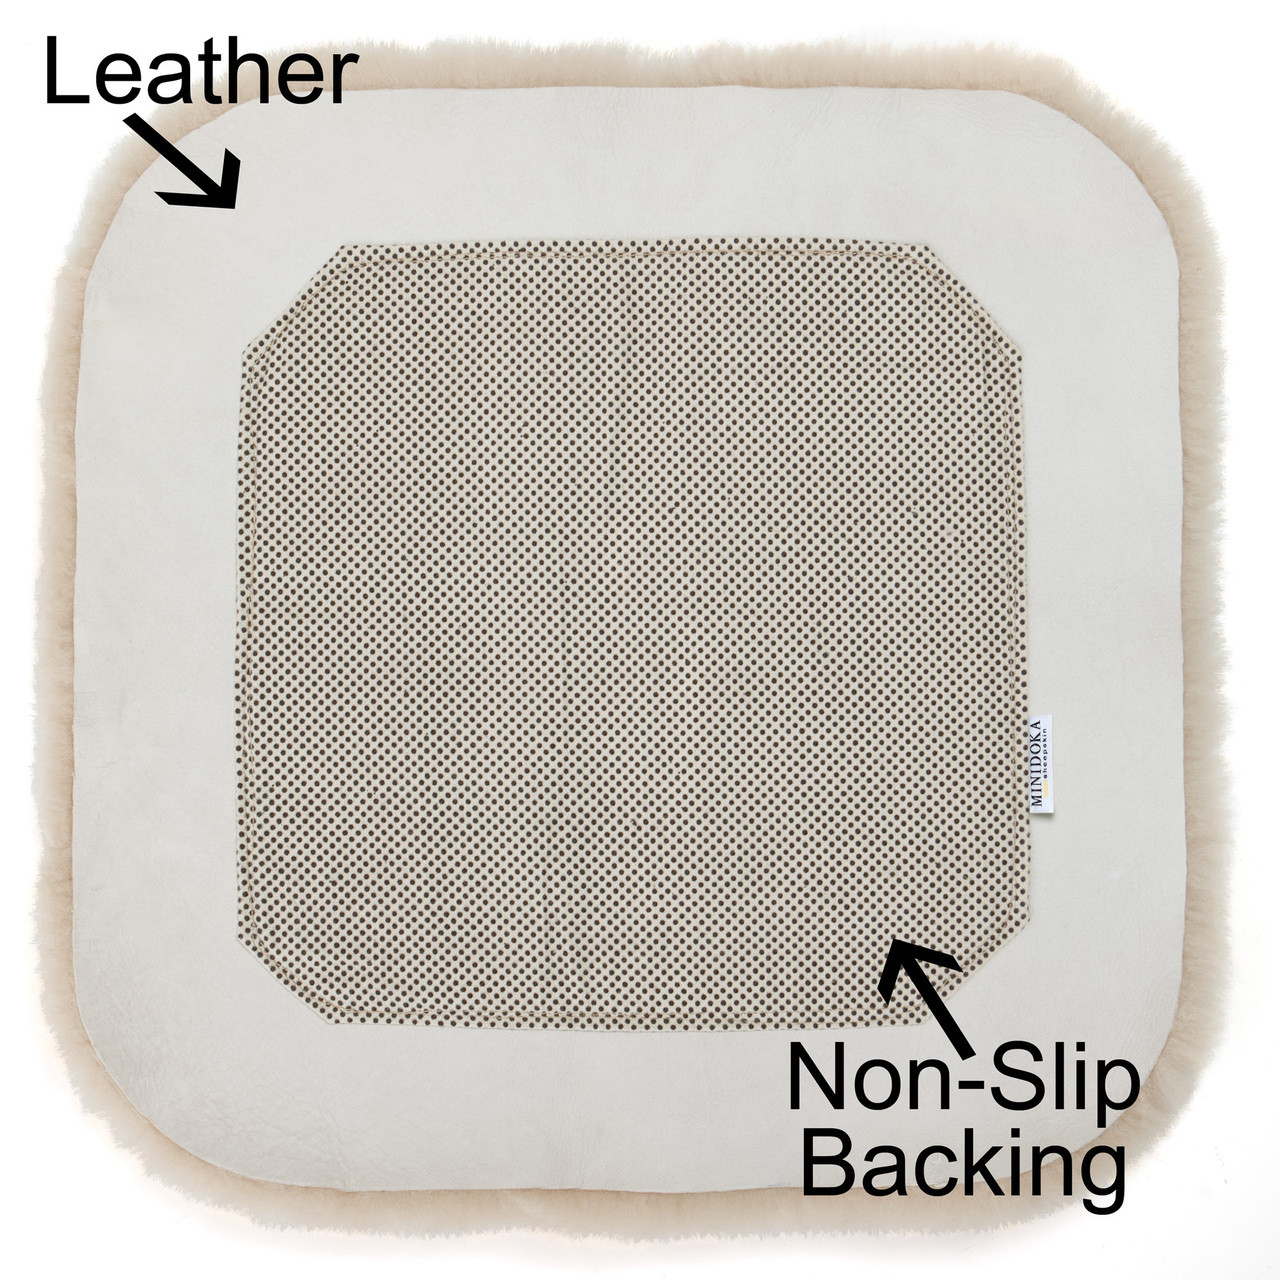 Detail of back with non-slip material sewn securely on middle of pad, leaving space around the edges for the soft leather to conform to the seat.